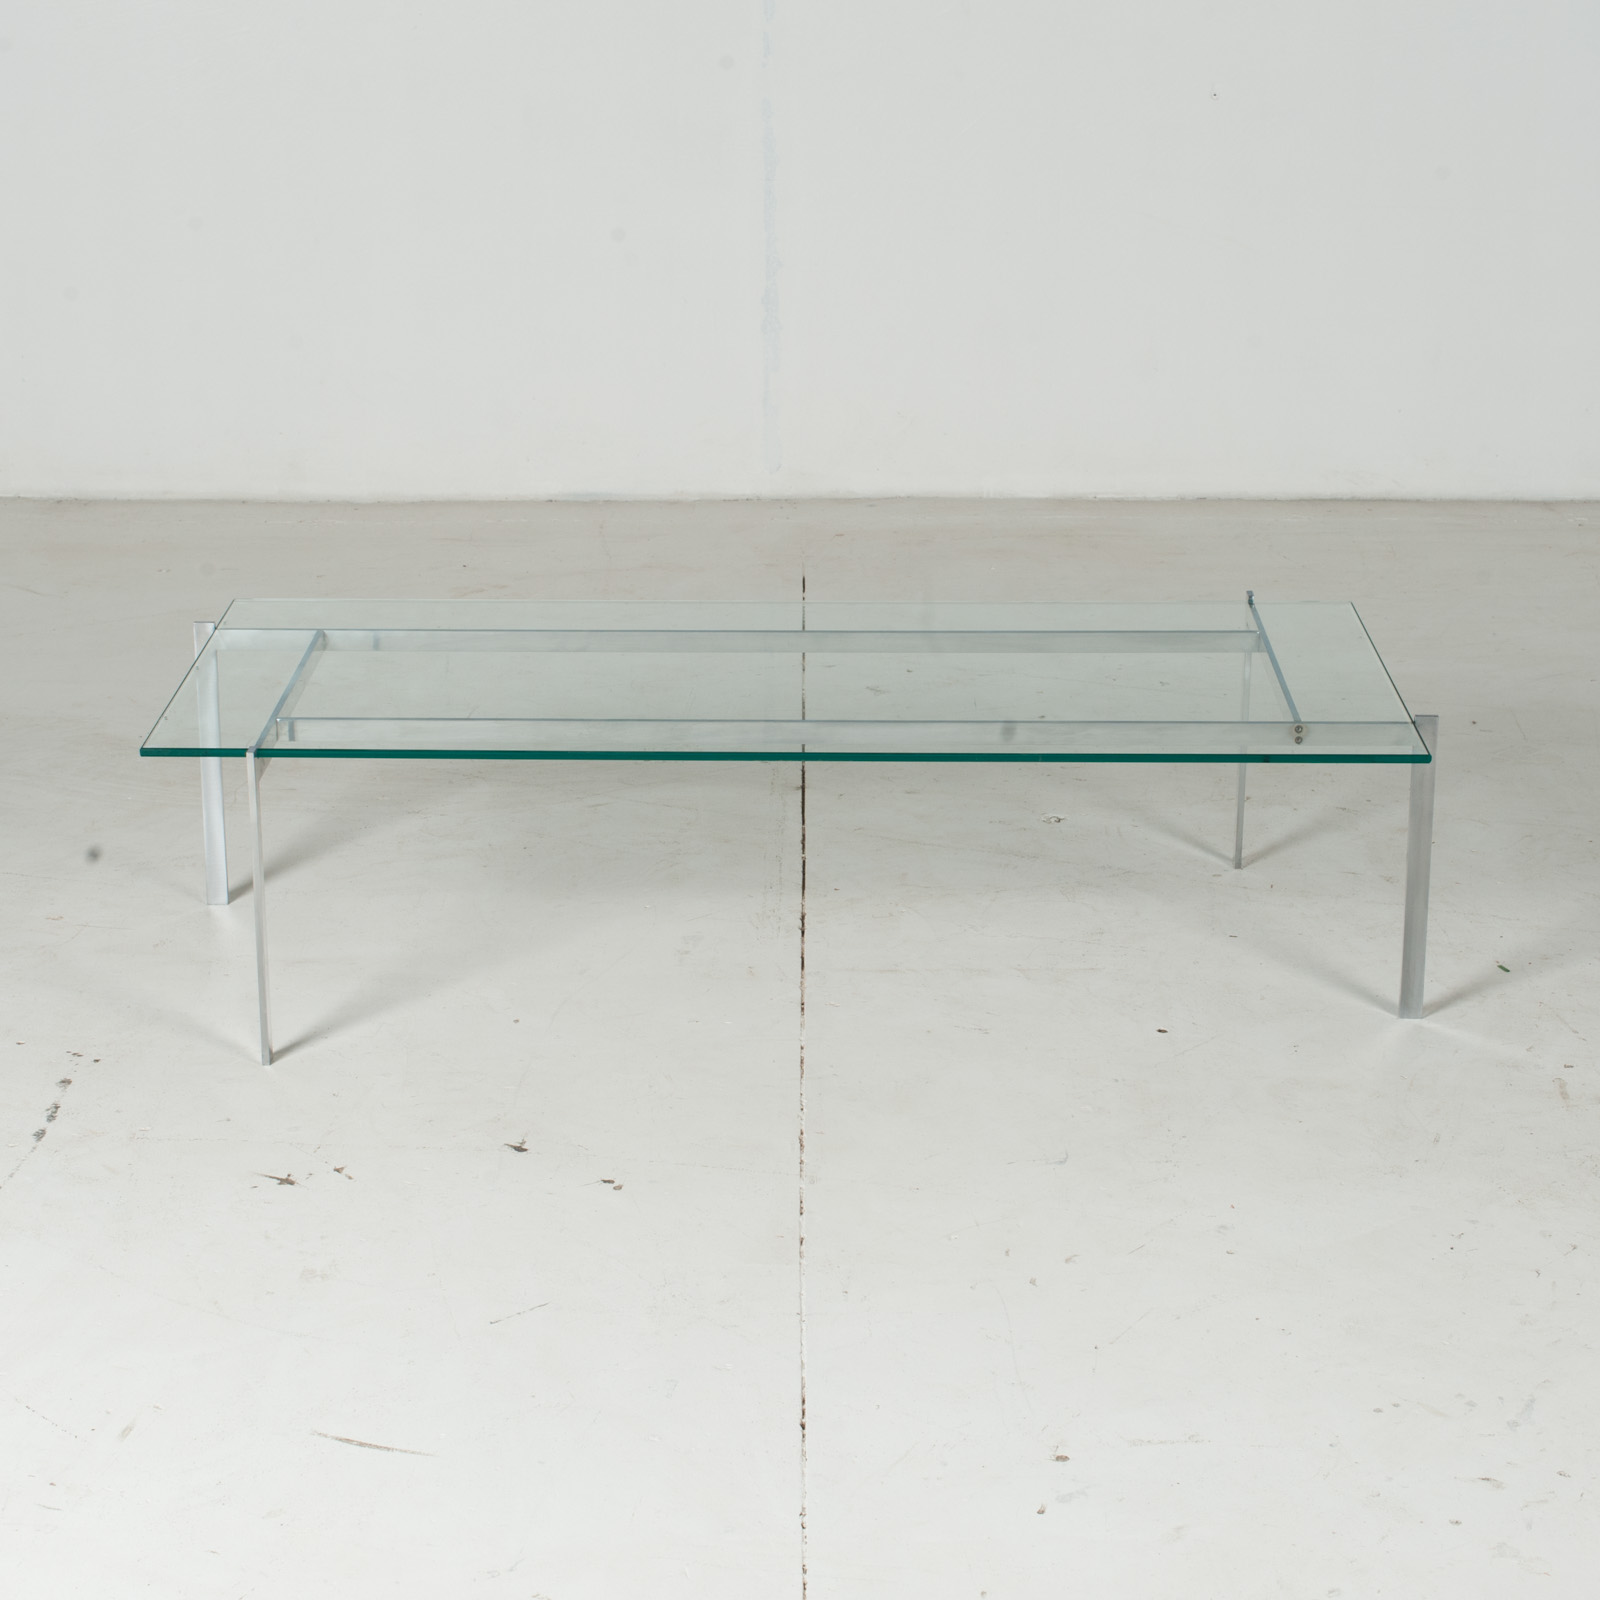 Coffee Table In The Style Of Poul Kjaerholm With Chrome And Glass, 1960s, Netherlands2